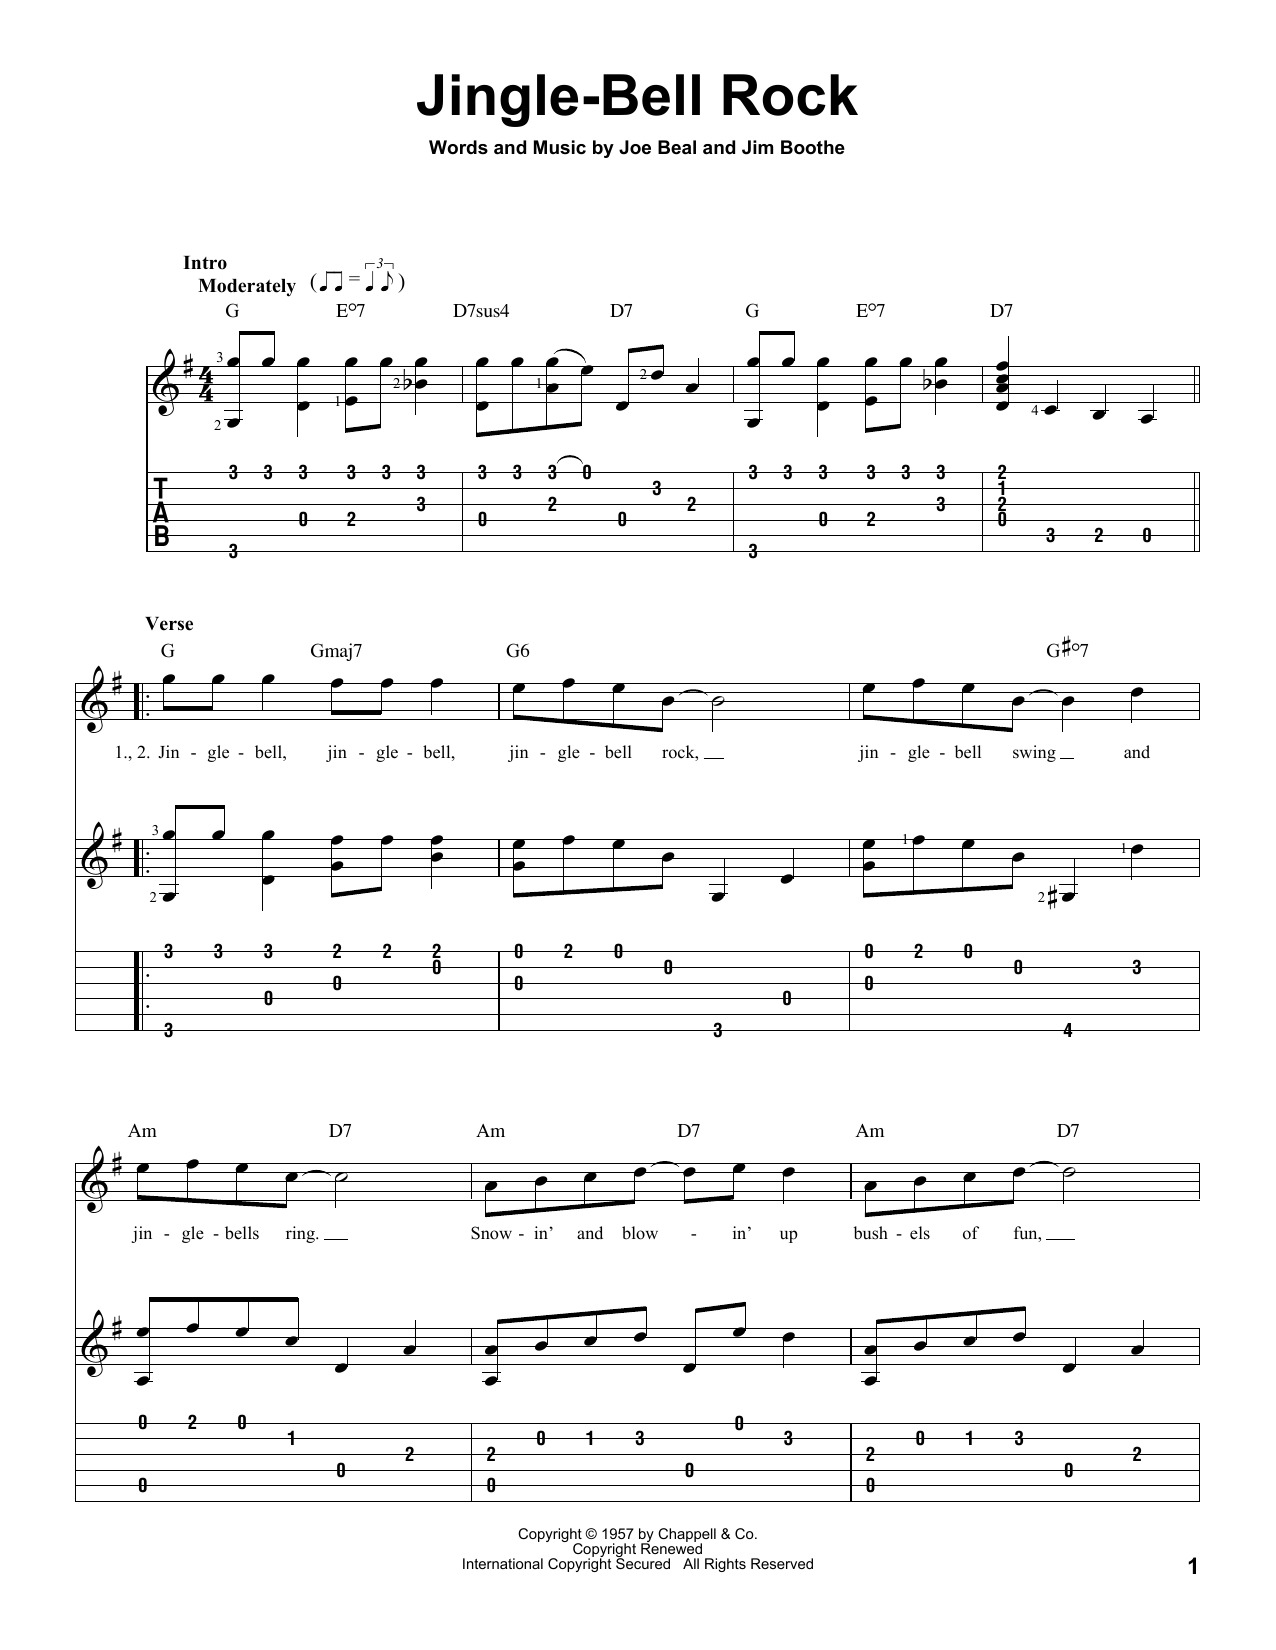 Sheet Music Digital Files To Print - Licensed Jim Boothe Digital ...